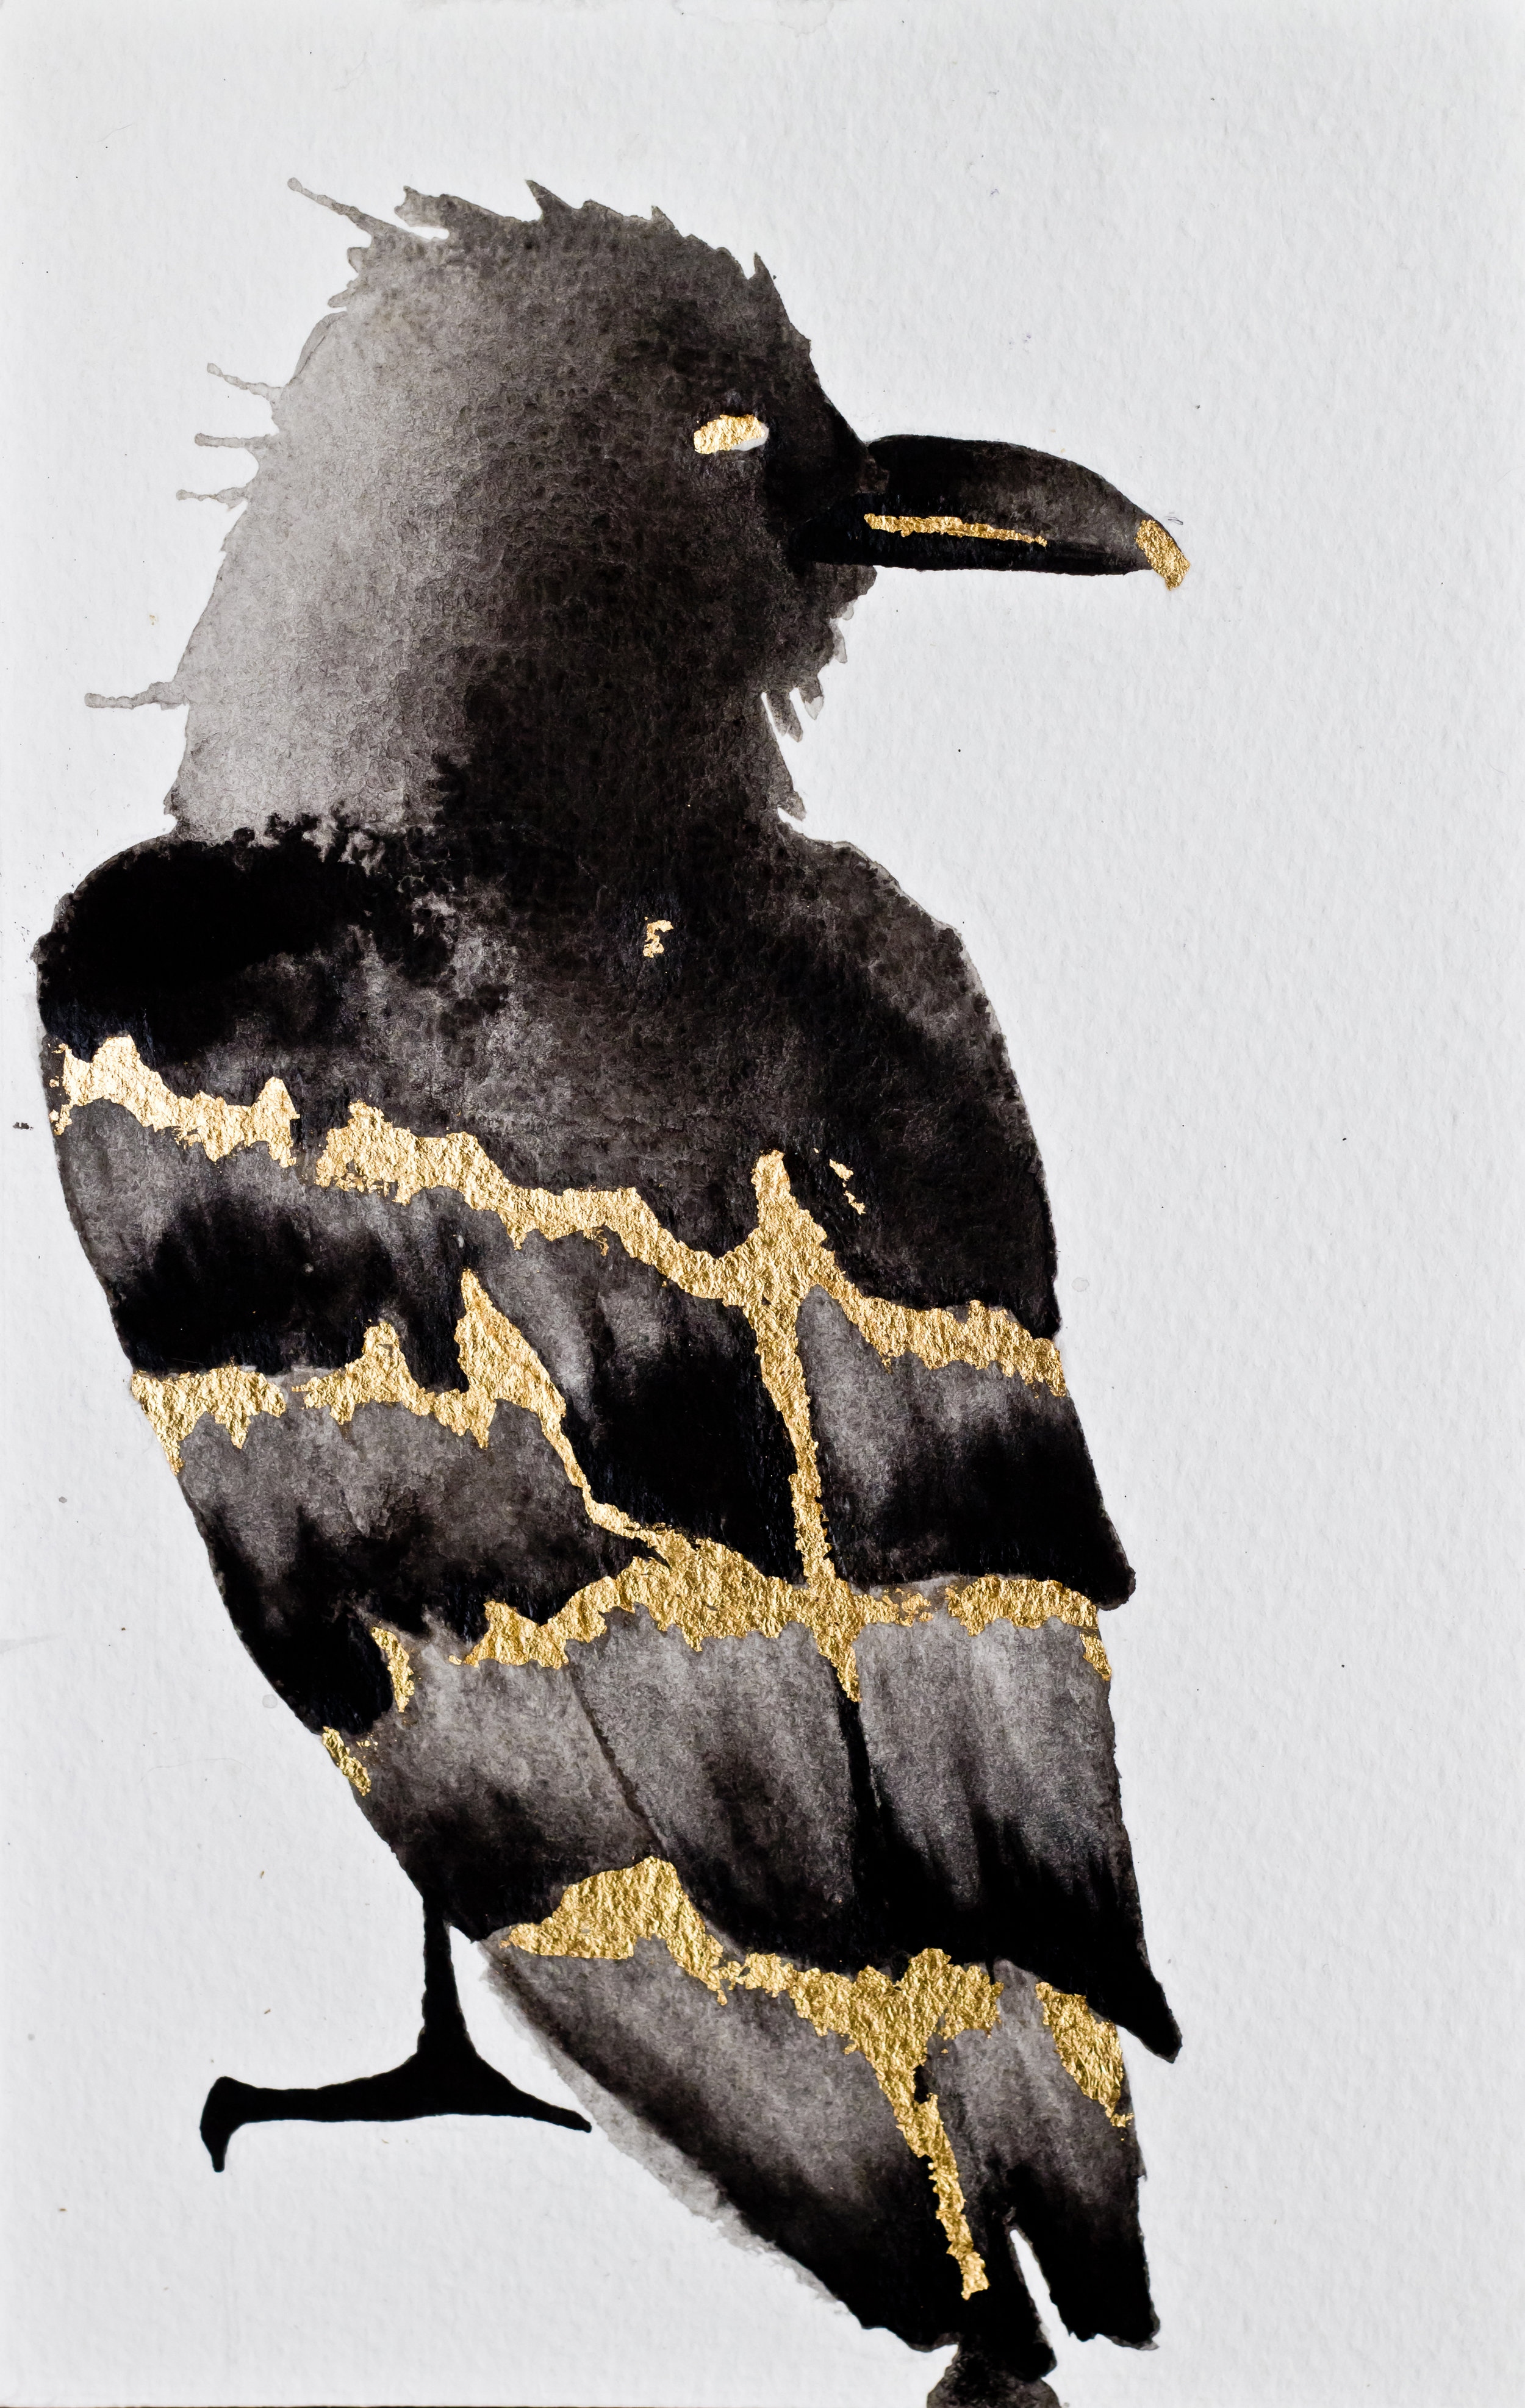 """Crow spirit started showing up right before my """"resurrection"""" phase. If you aren't familiar with animal totems, Google """"crow totem meaning"""". Fun stuff."""